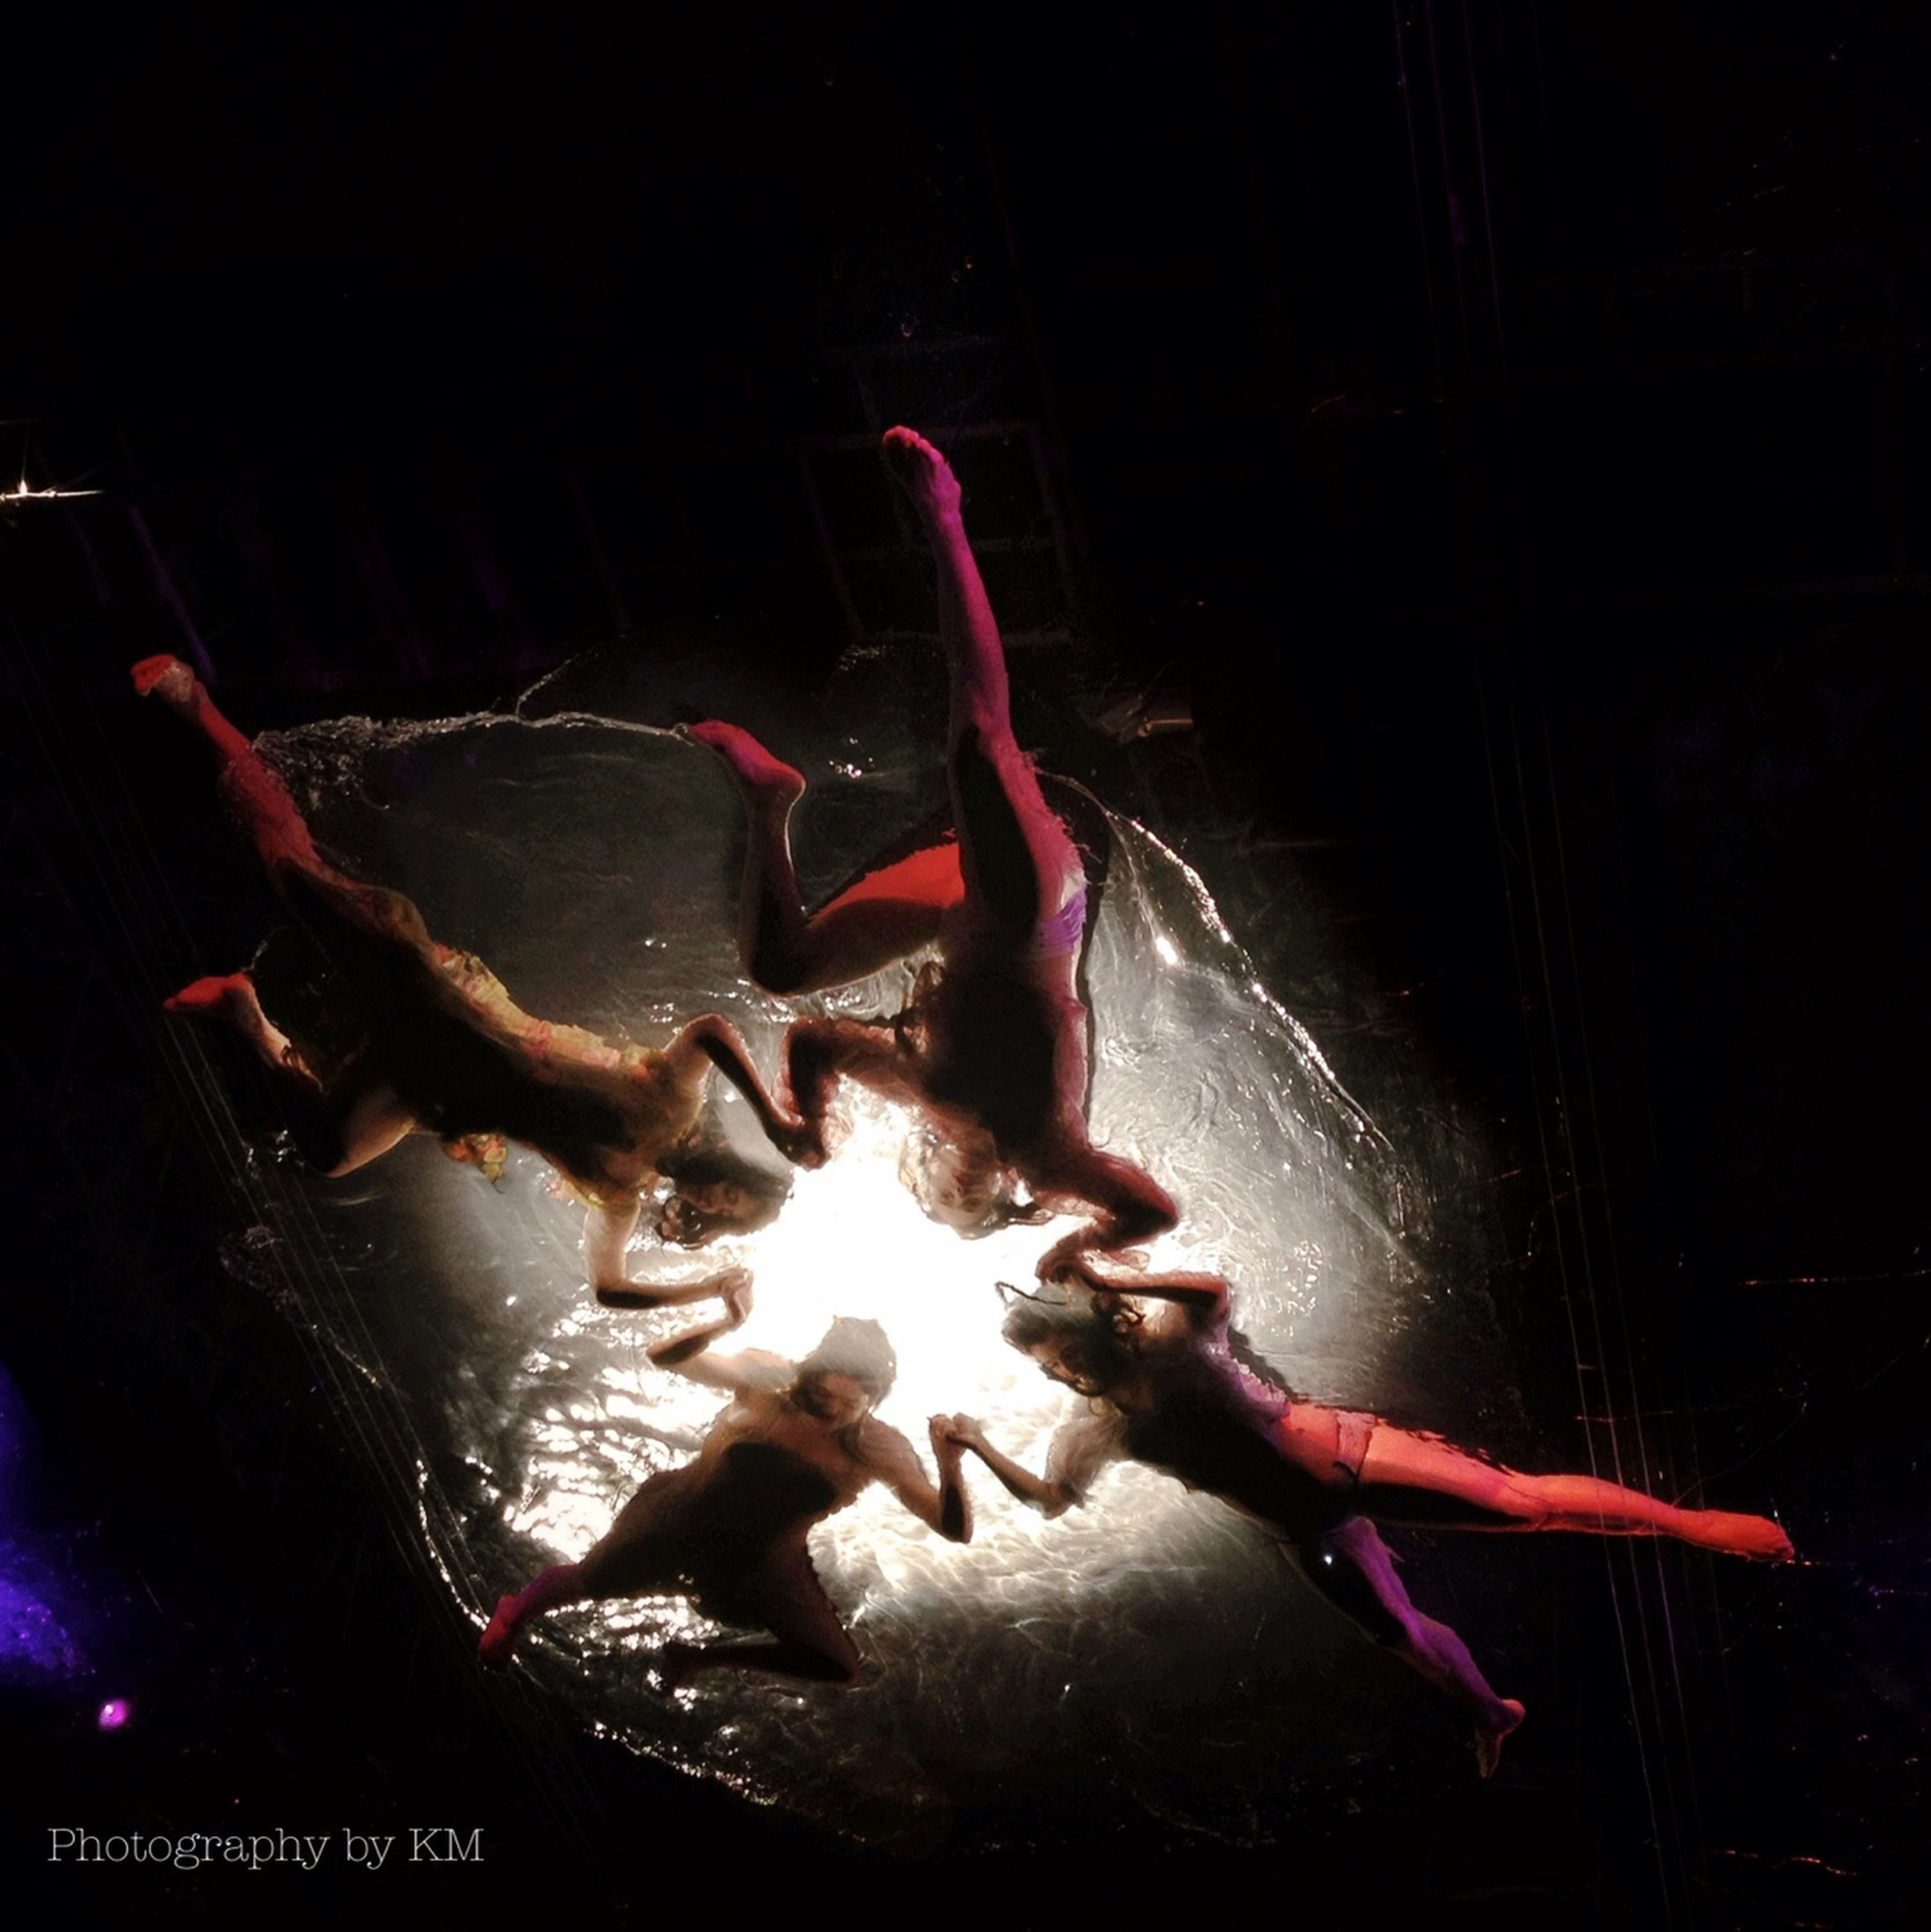 night, indoors, burning, illuminated, fire - natural phenomenon, flame, animal themes, close-up, no people, performance, heat - temperature, art and craft, high angle view, fish, arts culture and entertainment, animal representation, smoke - physical structure, dark